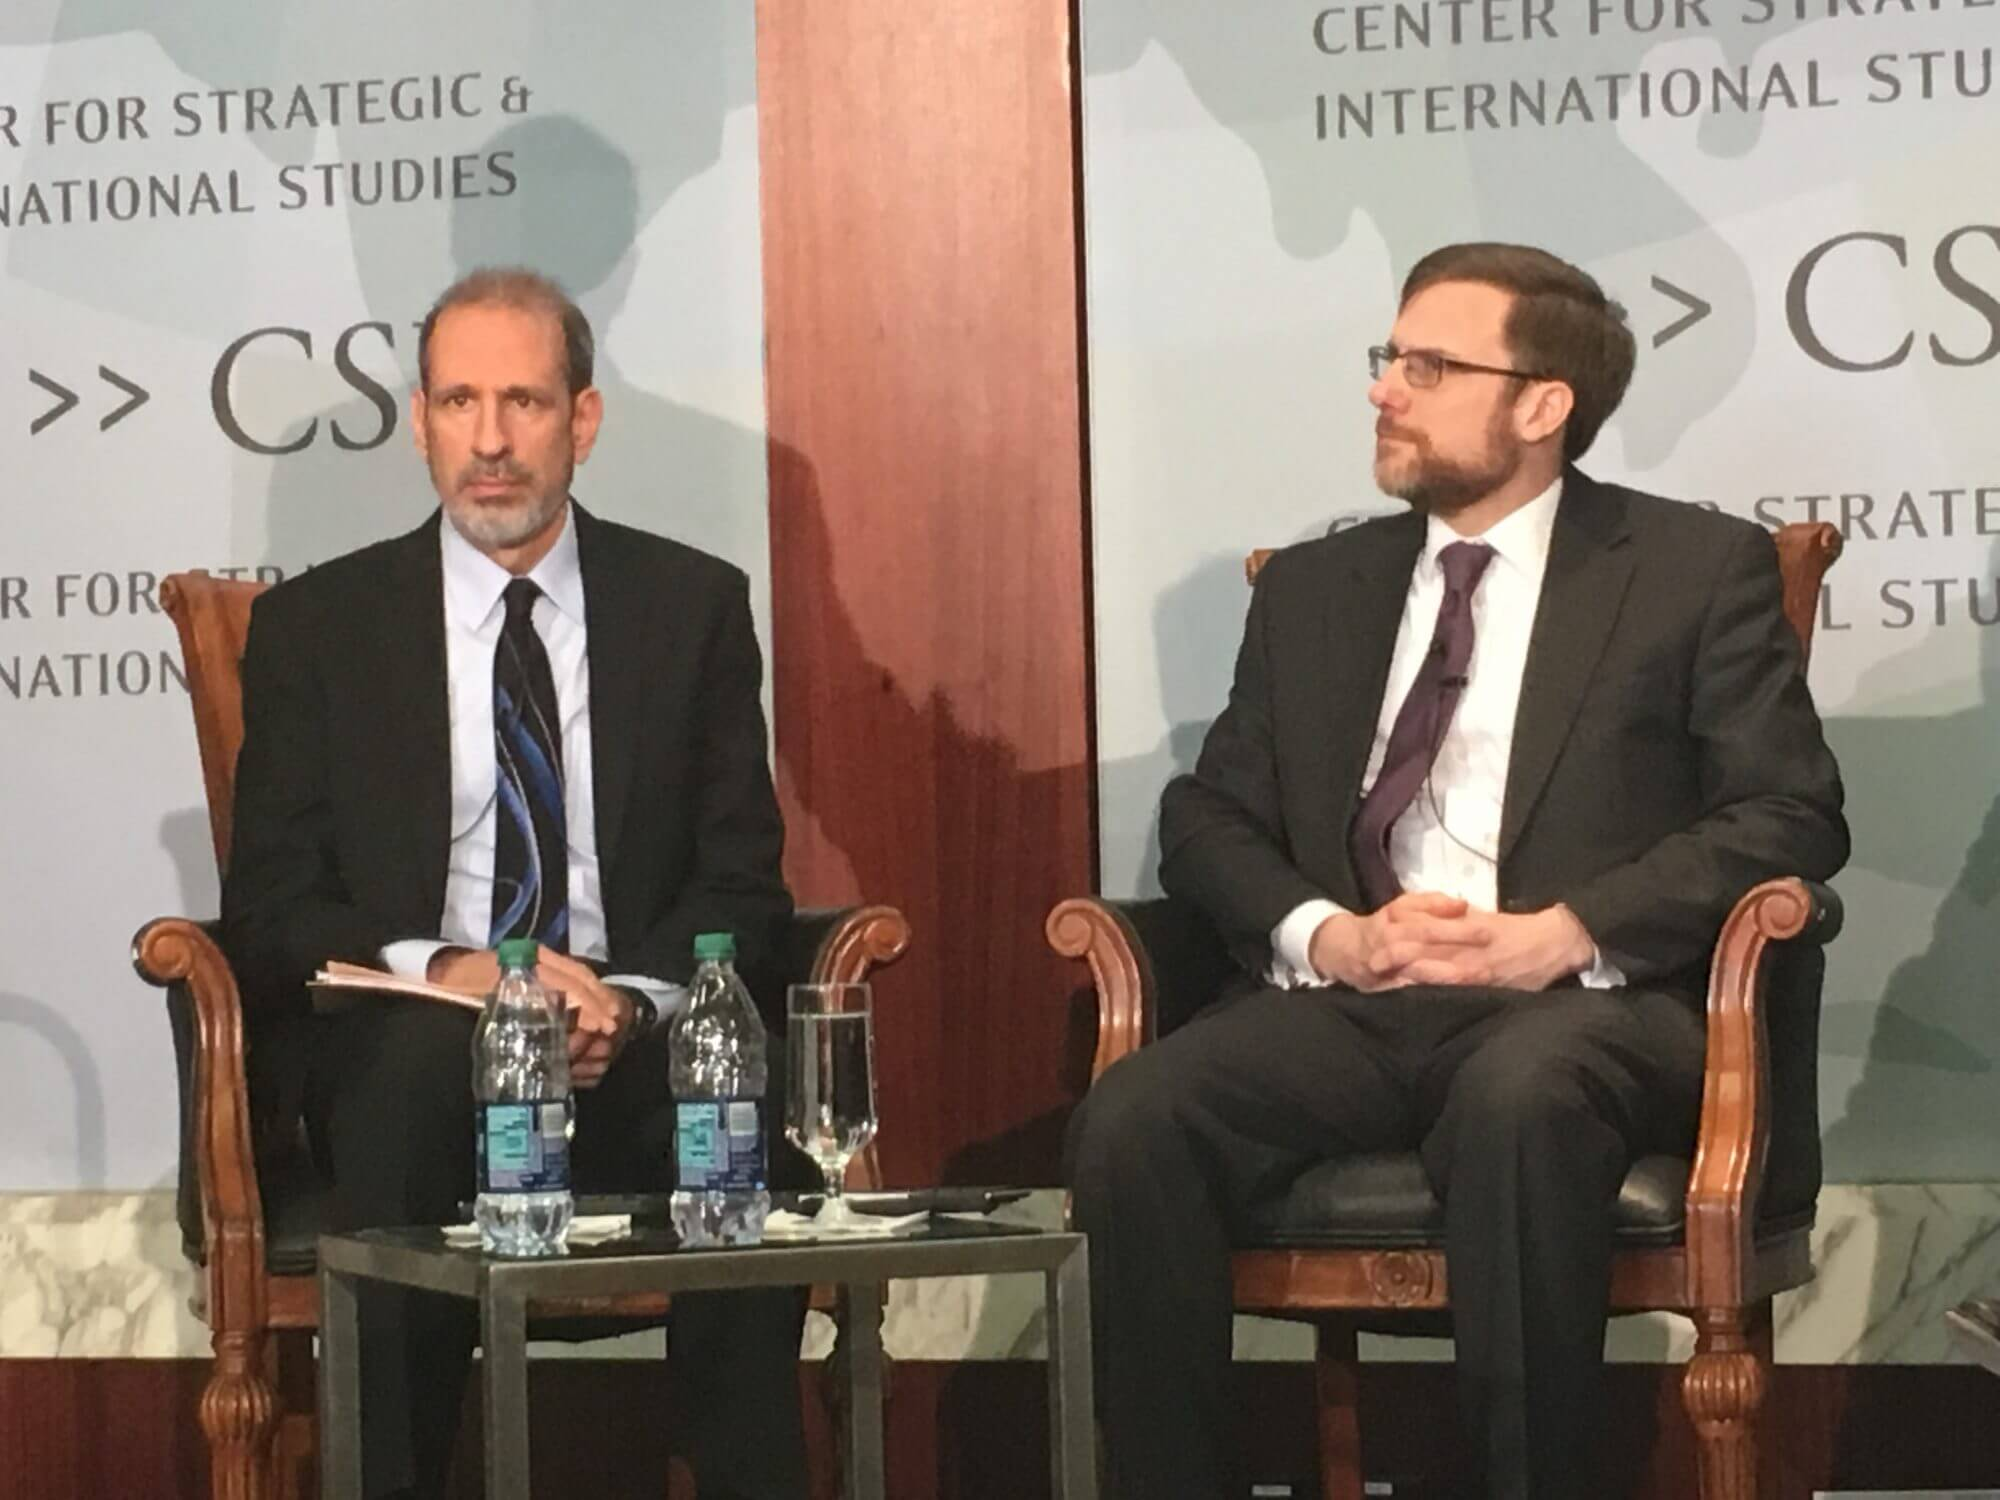 Defense officials: US projection of power needed to combat Russia, China